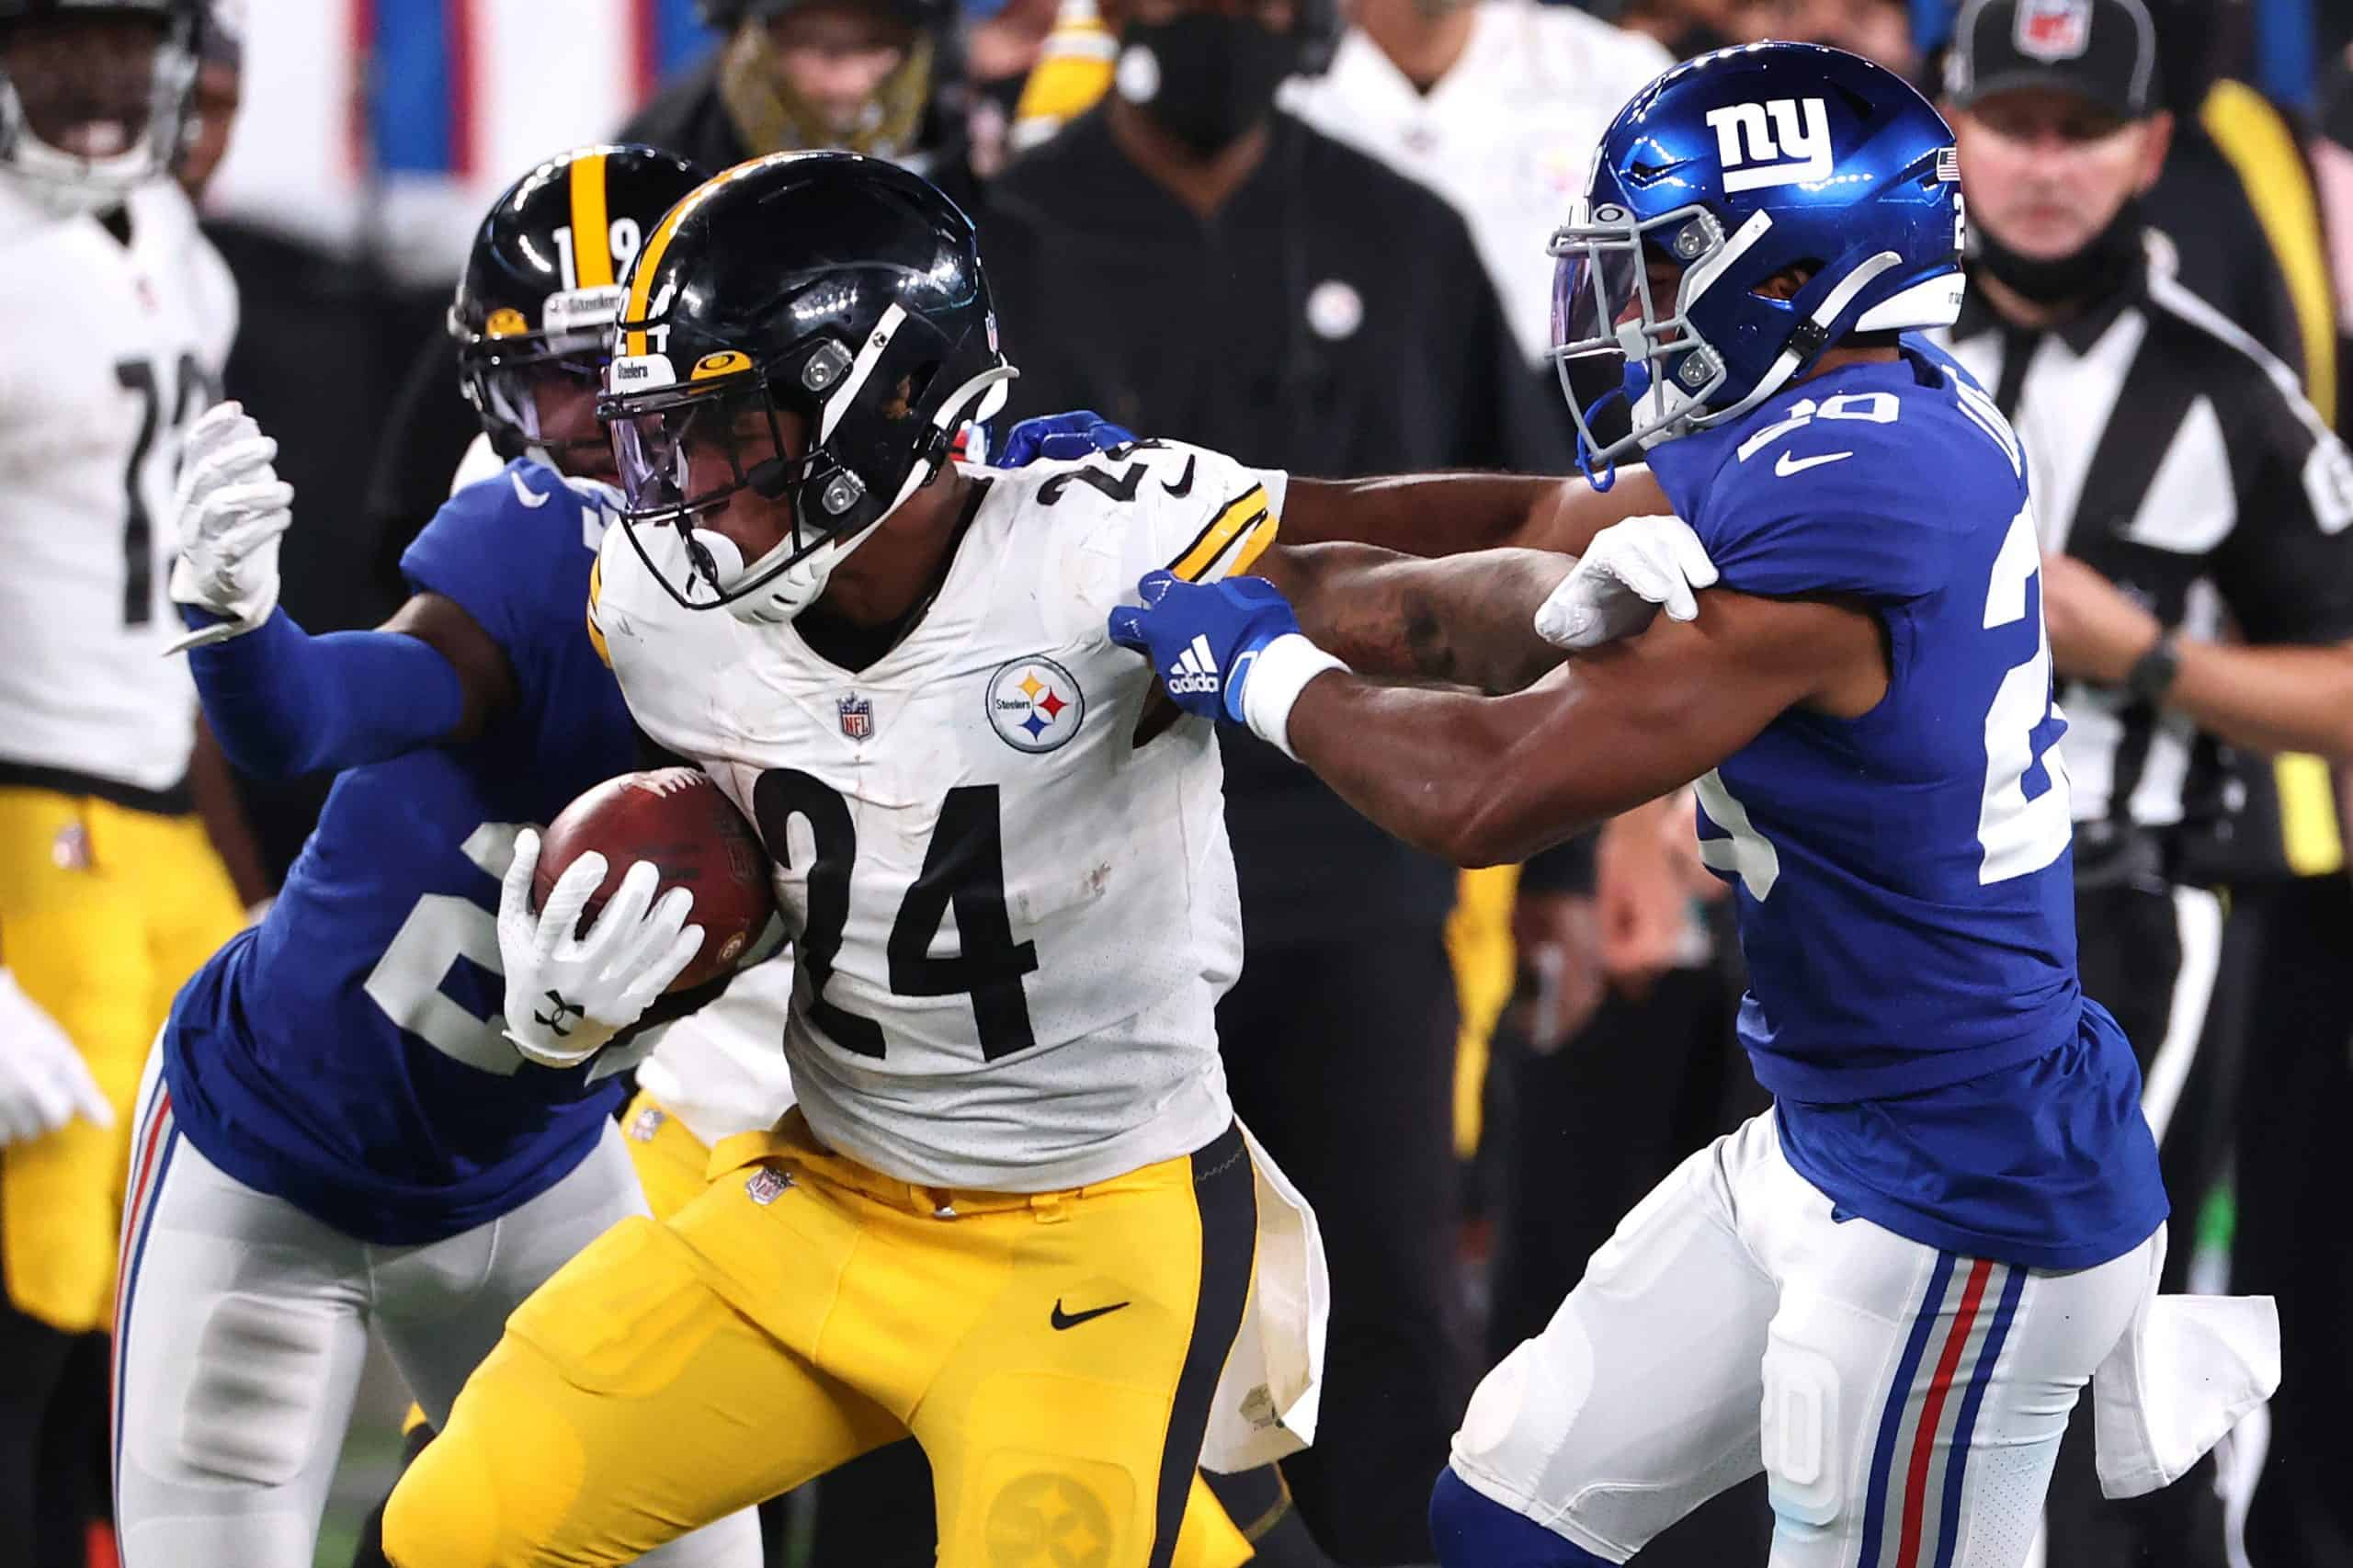 Takeaways from the Steelers victory over the Giants in Week 1